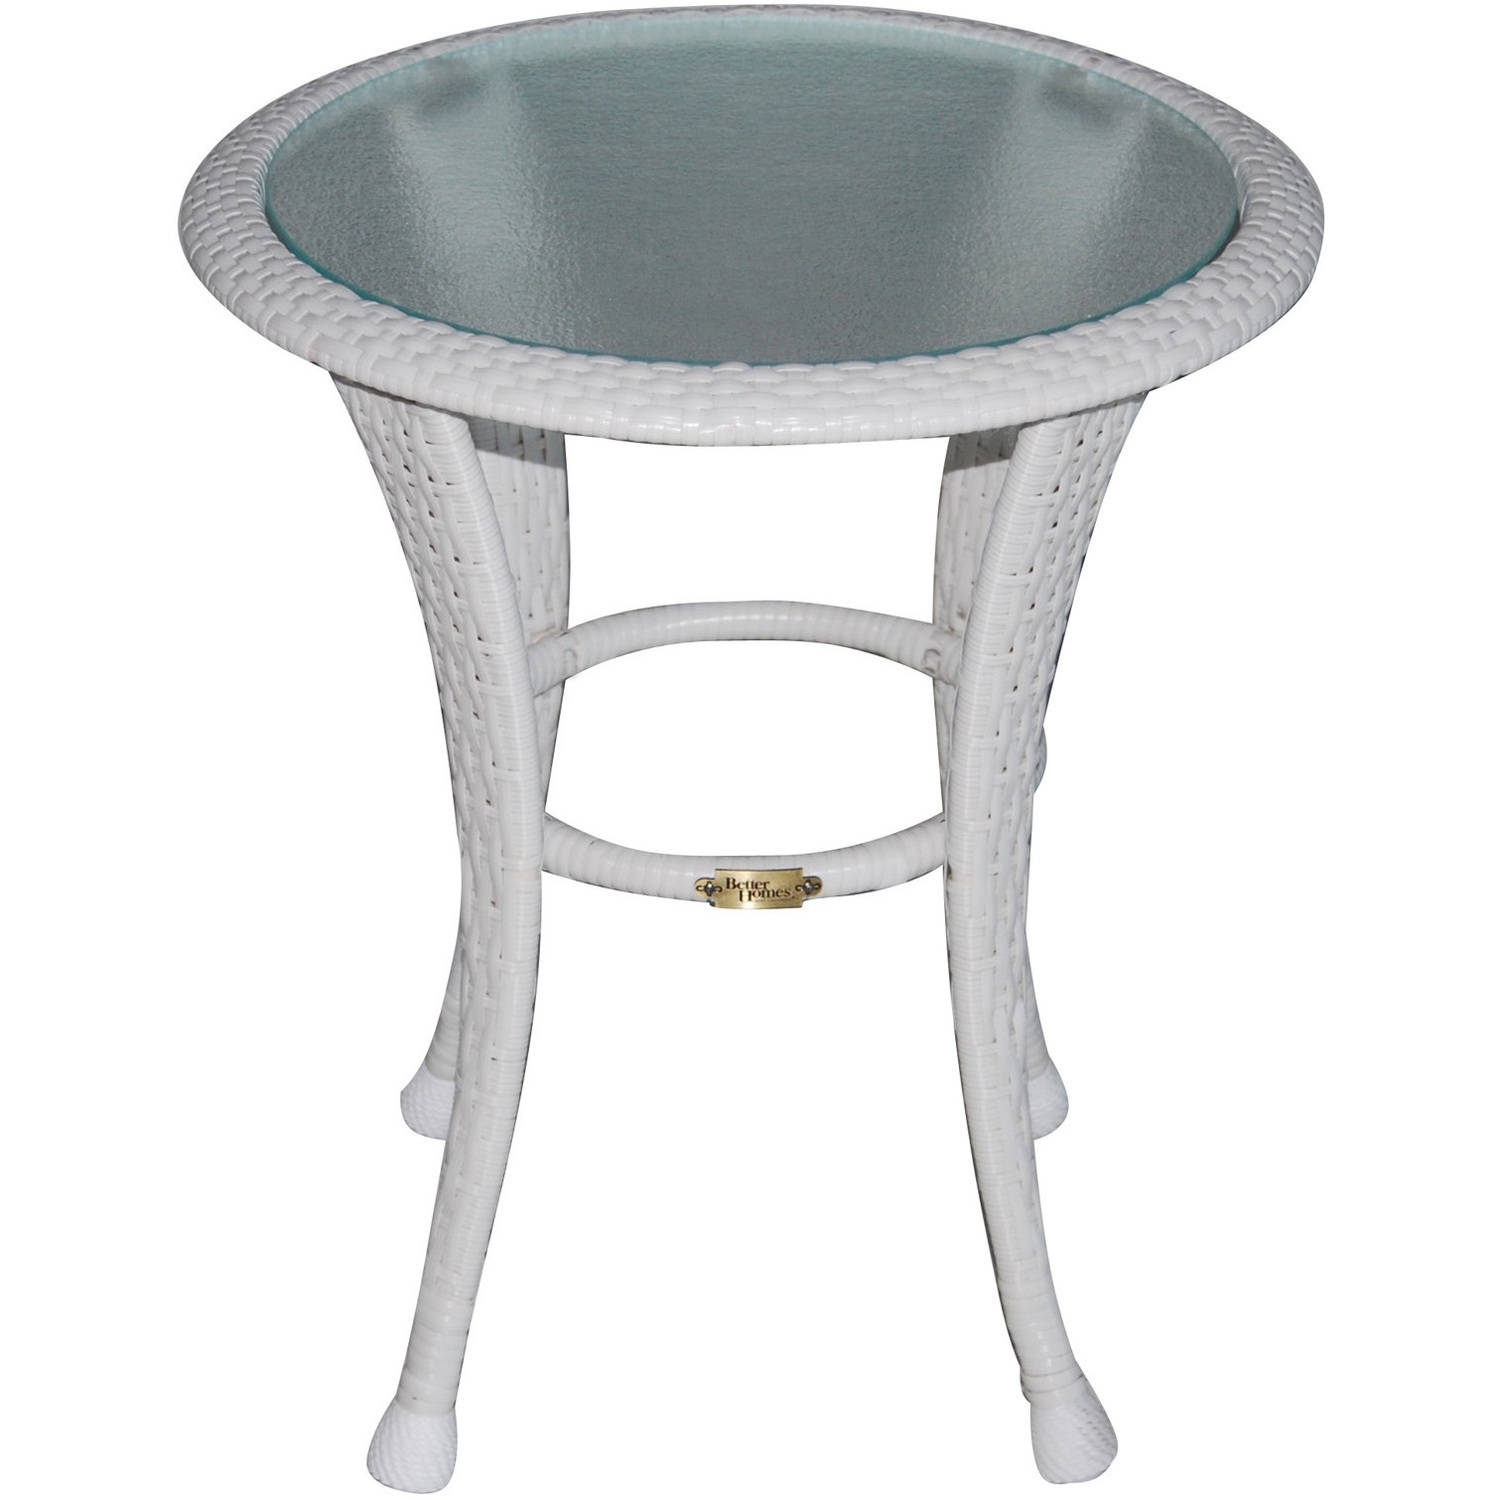 interior glass patio end table furniture side small outdoor and chairs storage red metal wicker tables accent full size tall marble verizon android tablet round black coffee with